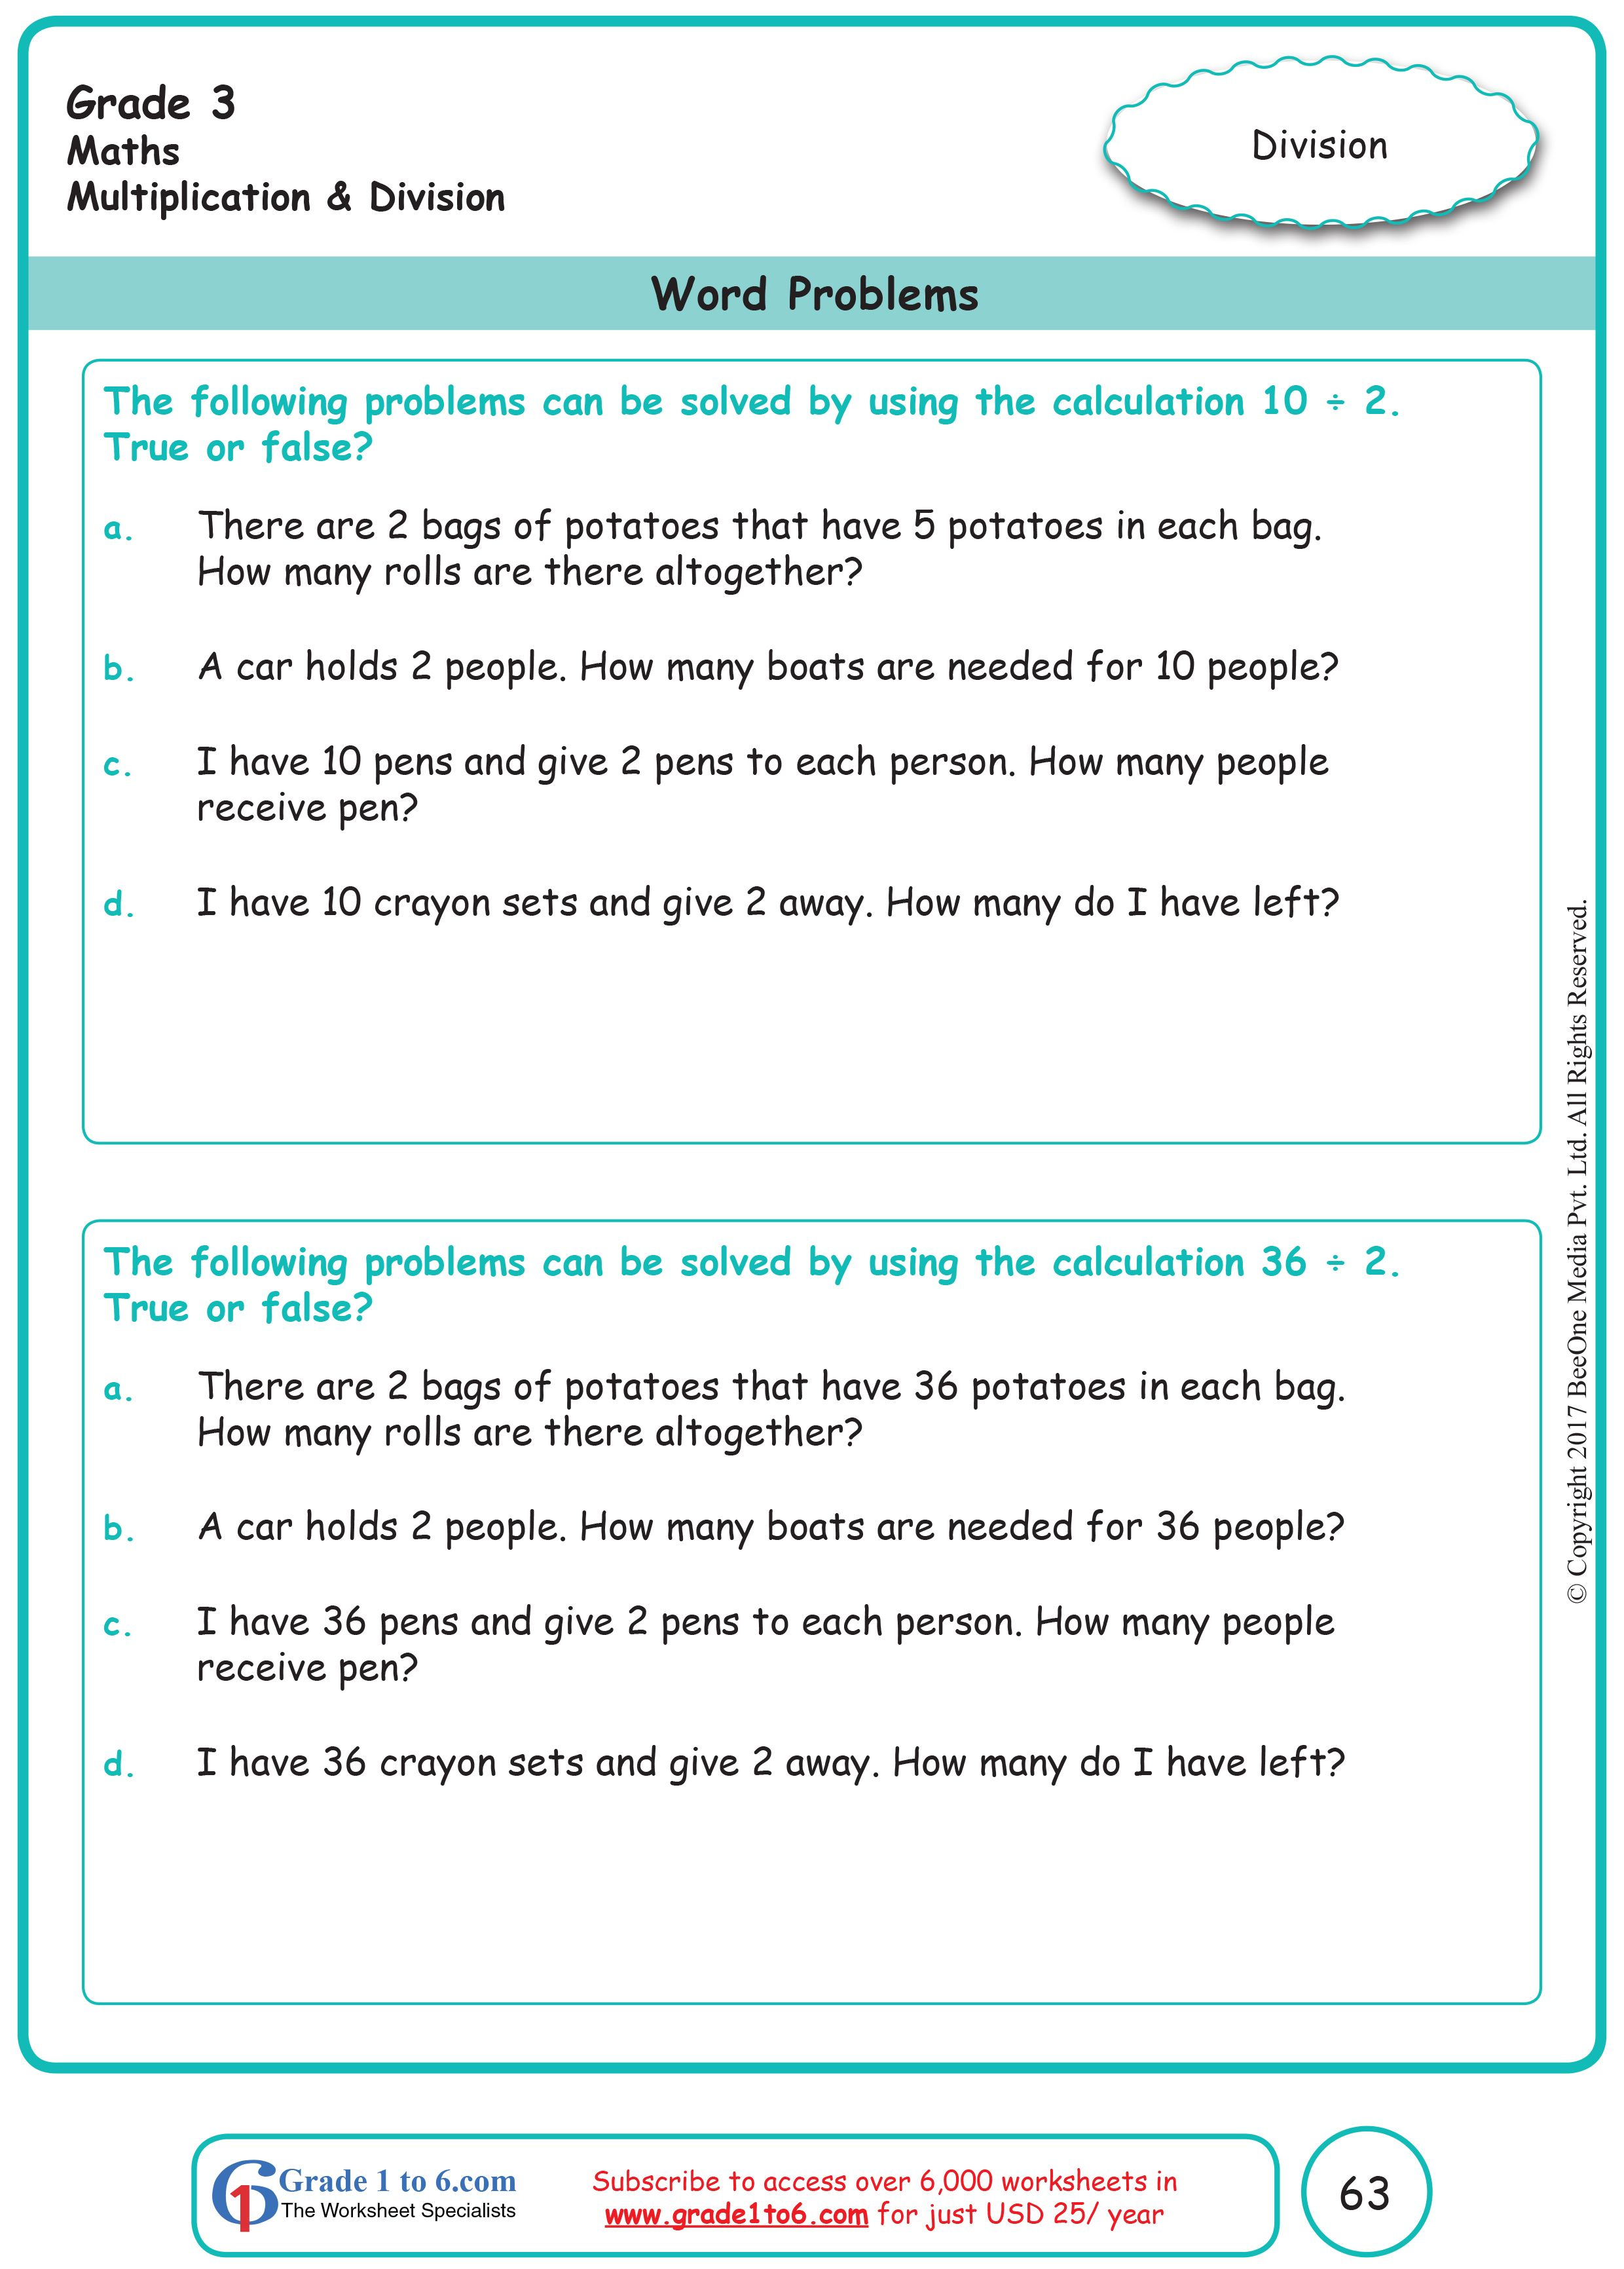 hight resolution of Word Problems in Multiplication \u0026 Division Grade 3 Math   Free math  worksheets